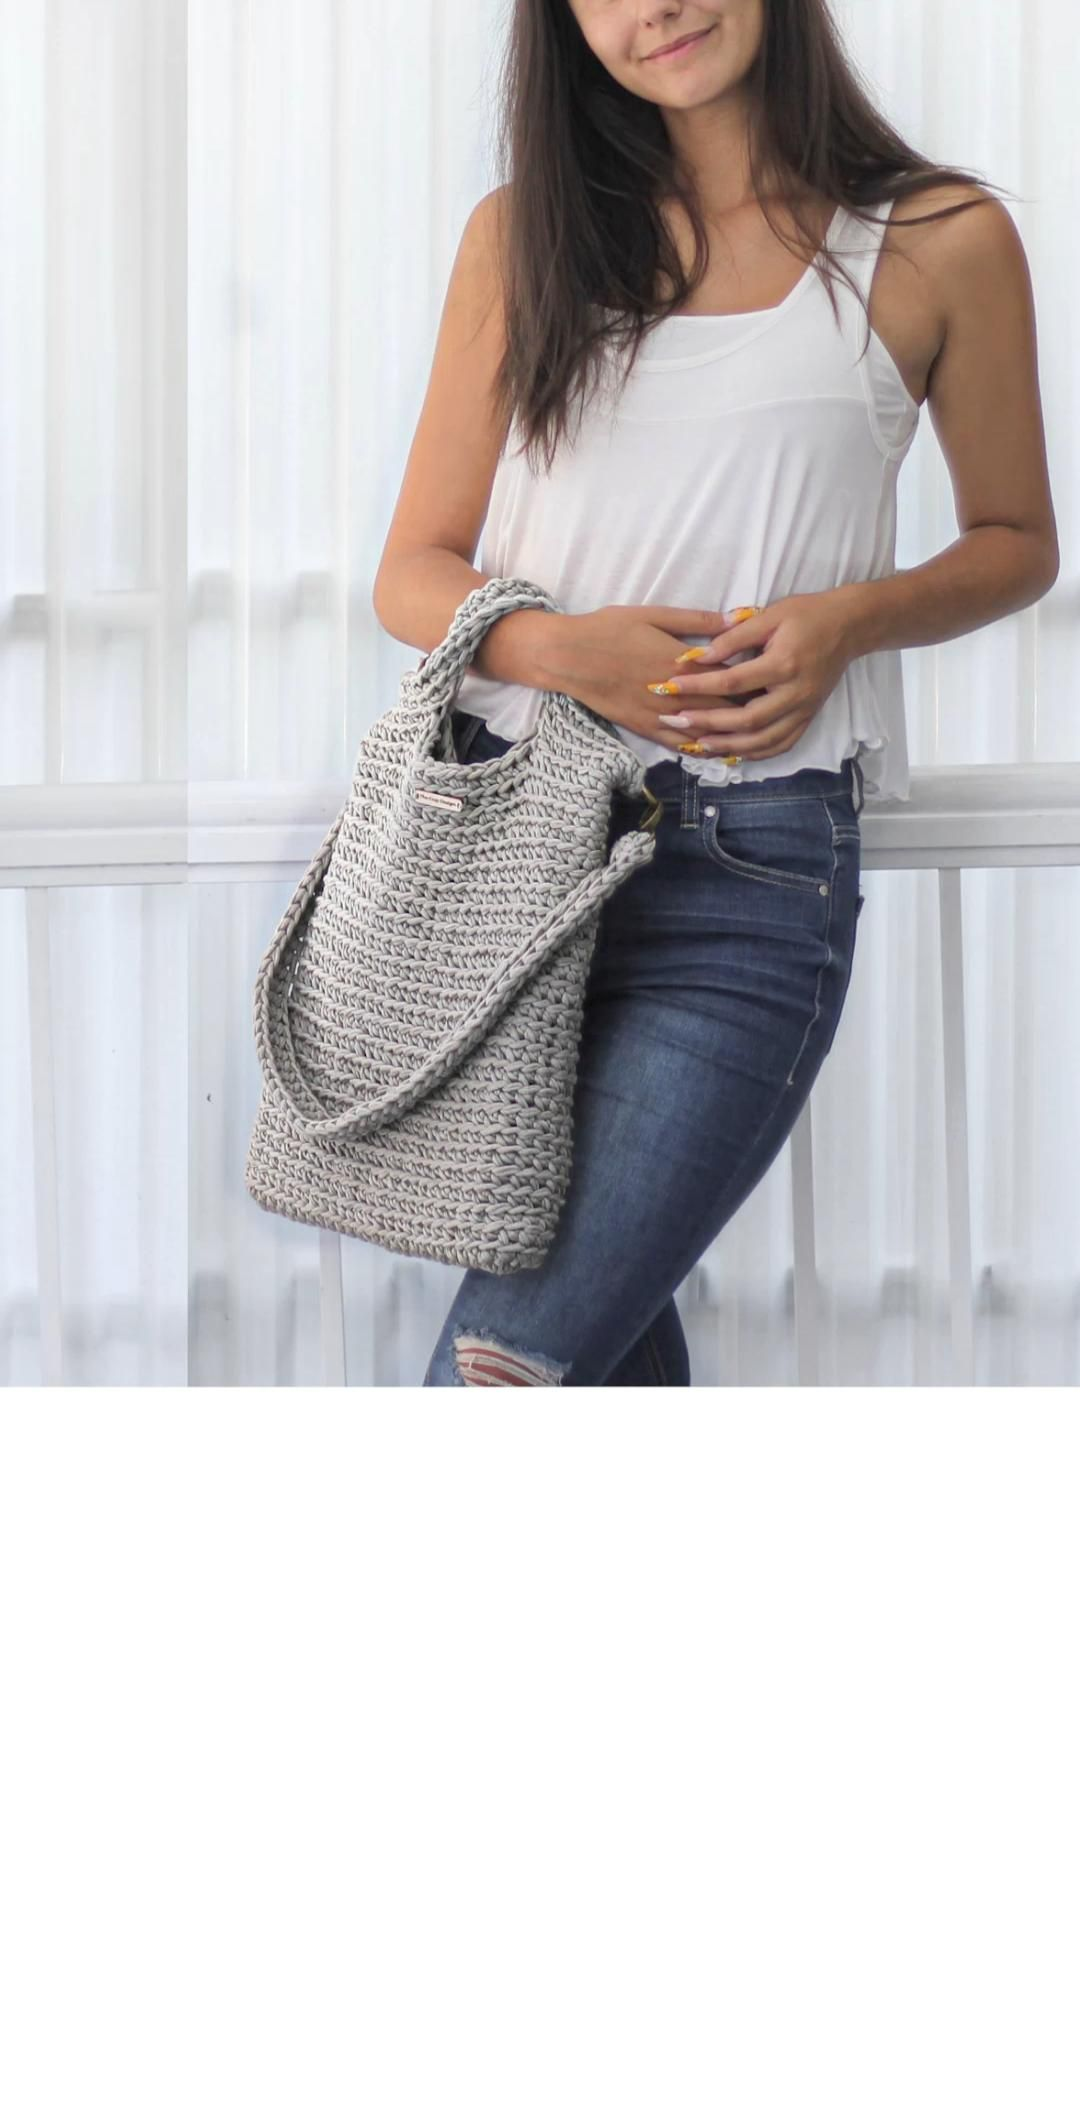 LIMA - Crochet Convertible BAG pattern - pdf - instant download - TheEasyDesign